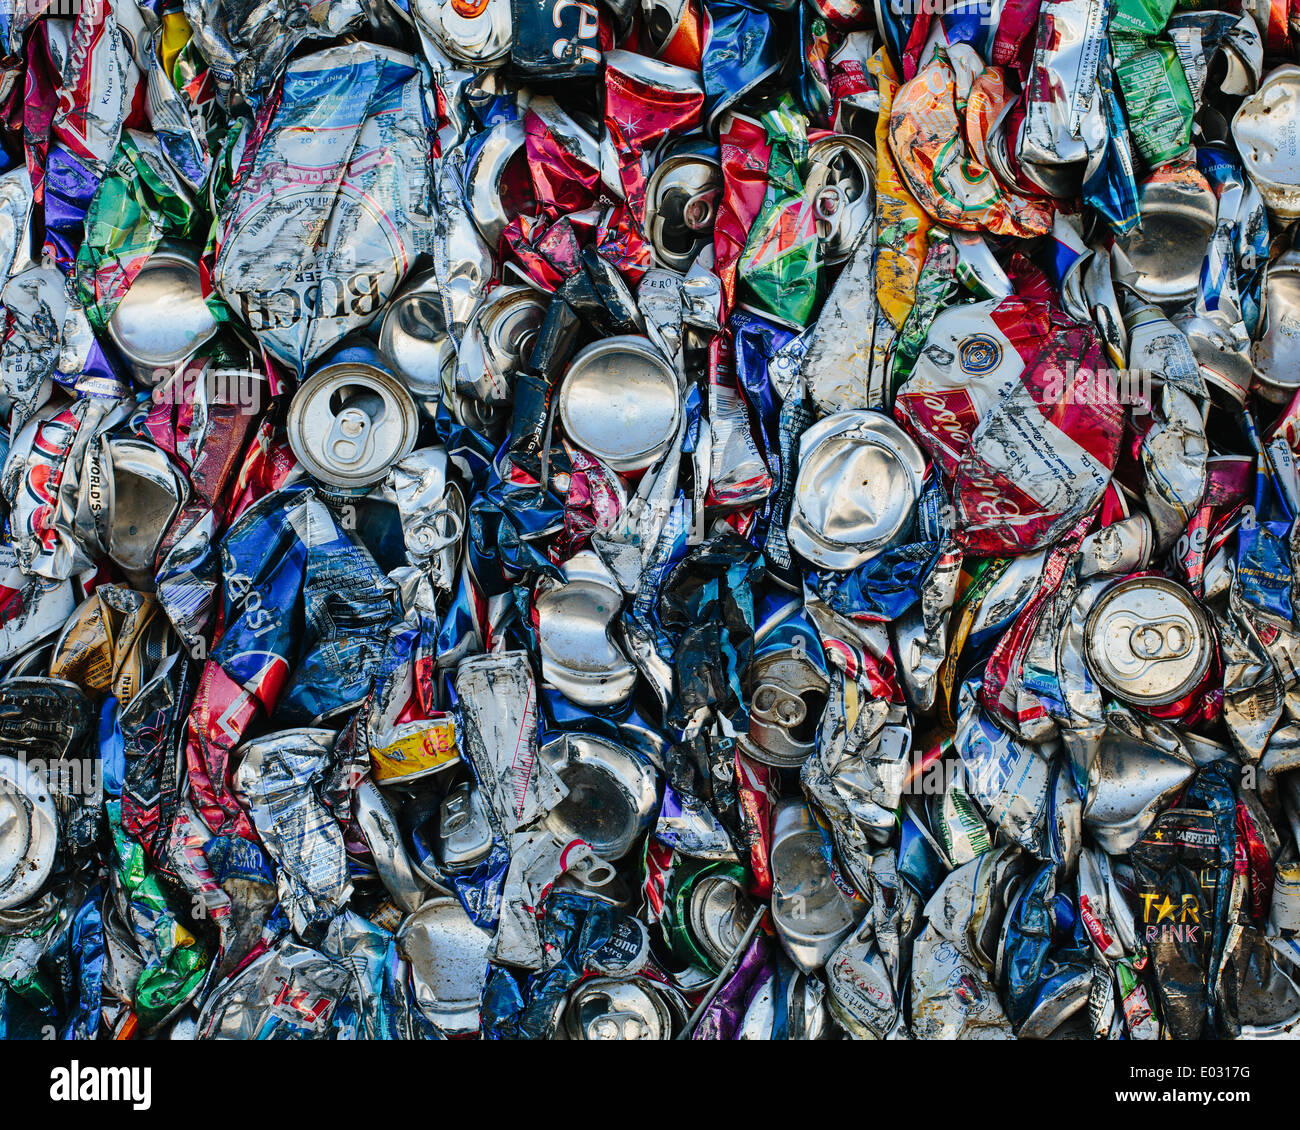 Mass of aluminium cans being processed at a recycling plant. Stock Photo